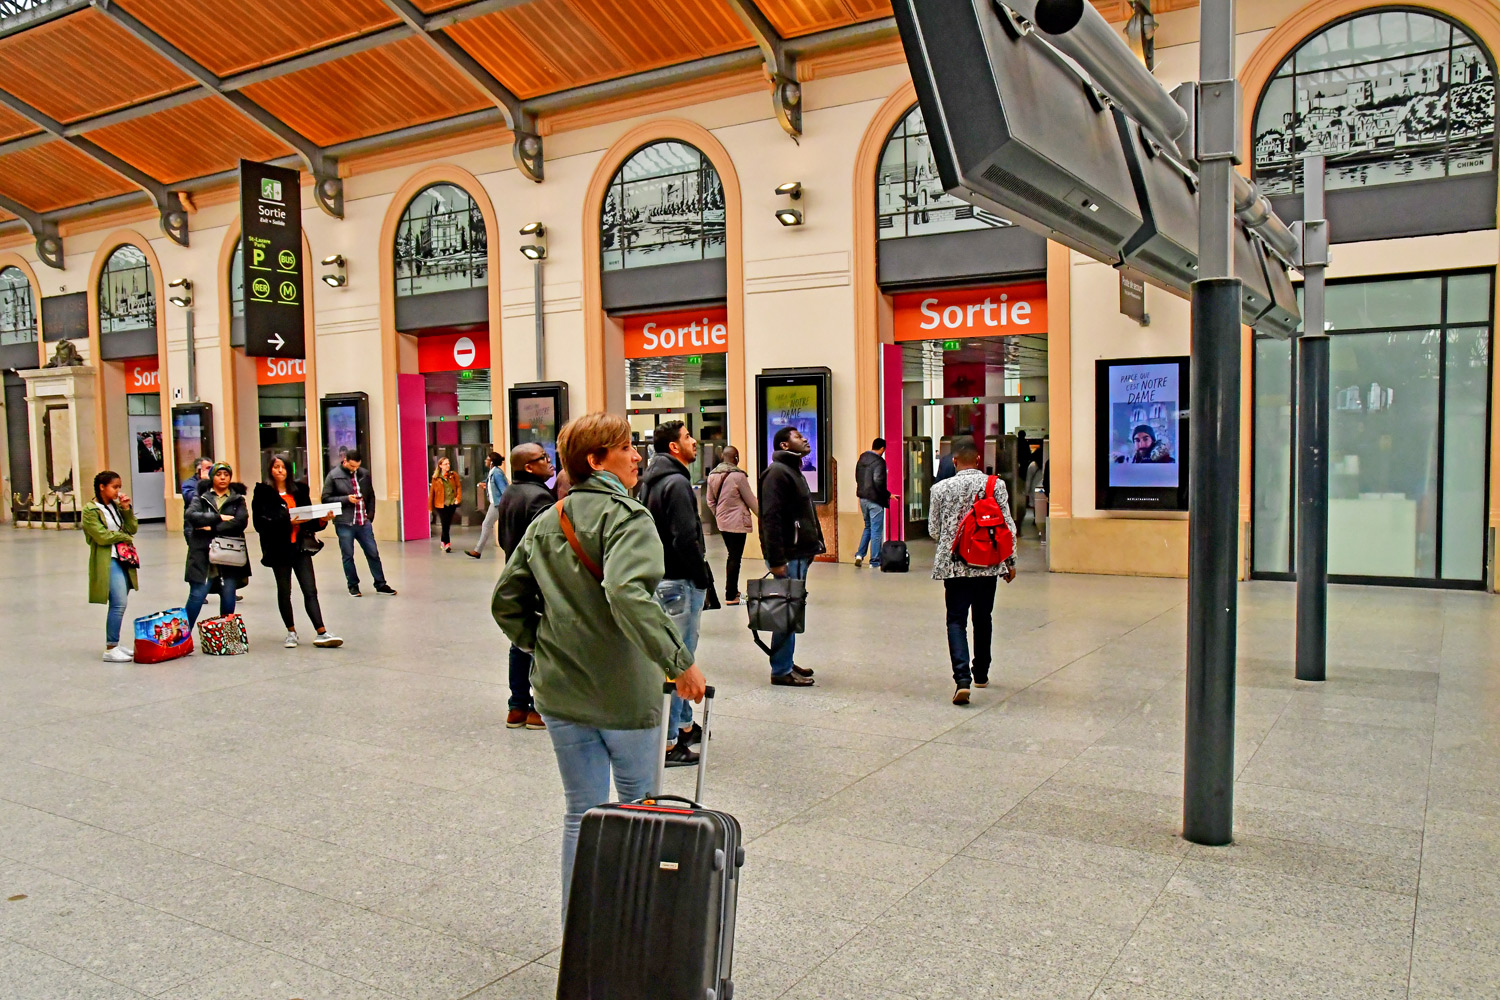 Saint Lazare train station